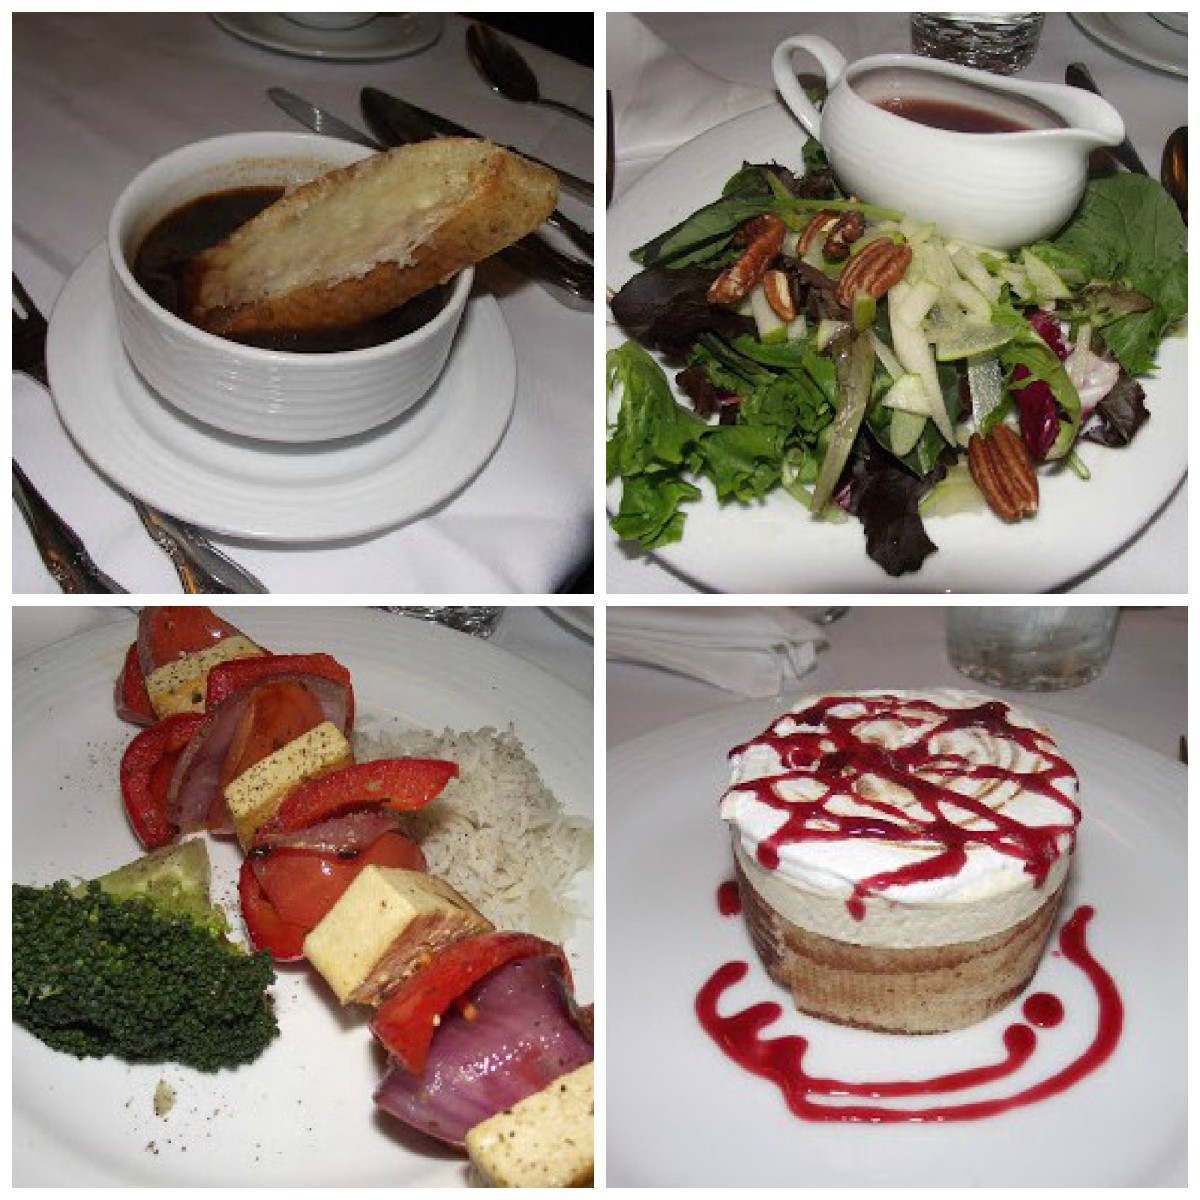 onion soup, pear and pecan salad, grilled tofu skewers, maple cream cheesecake